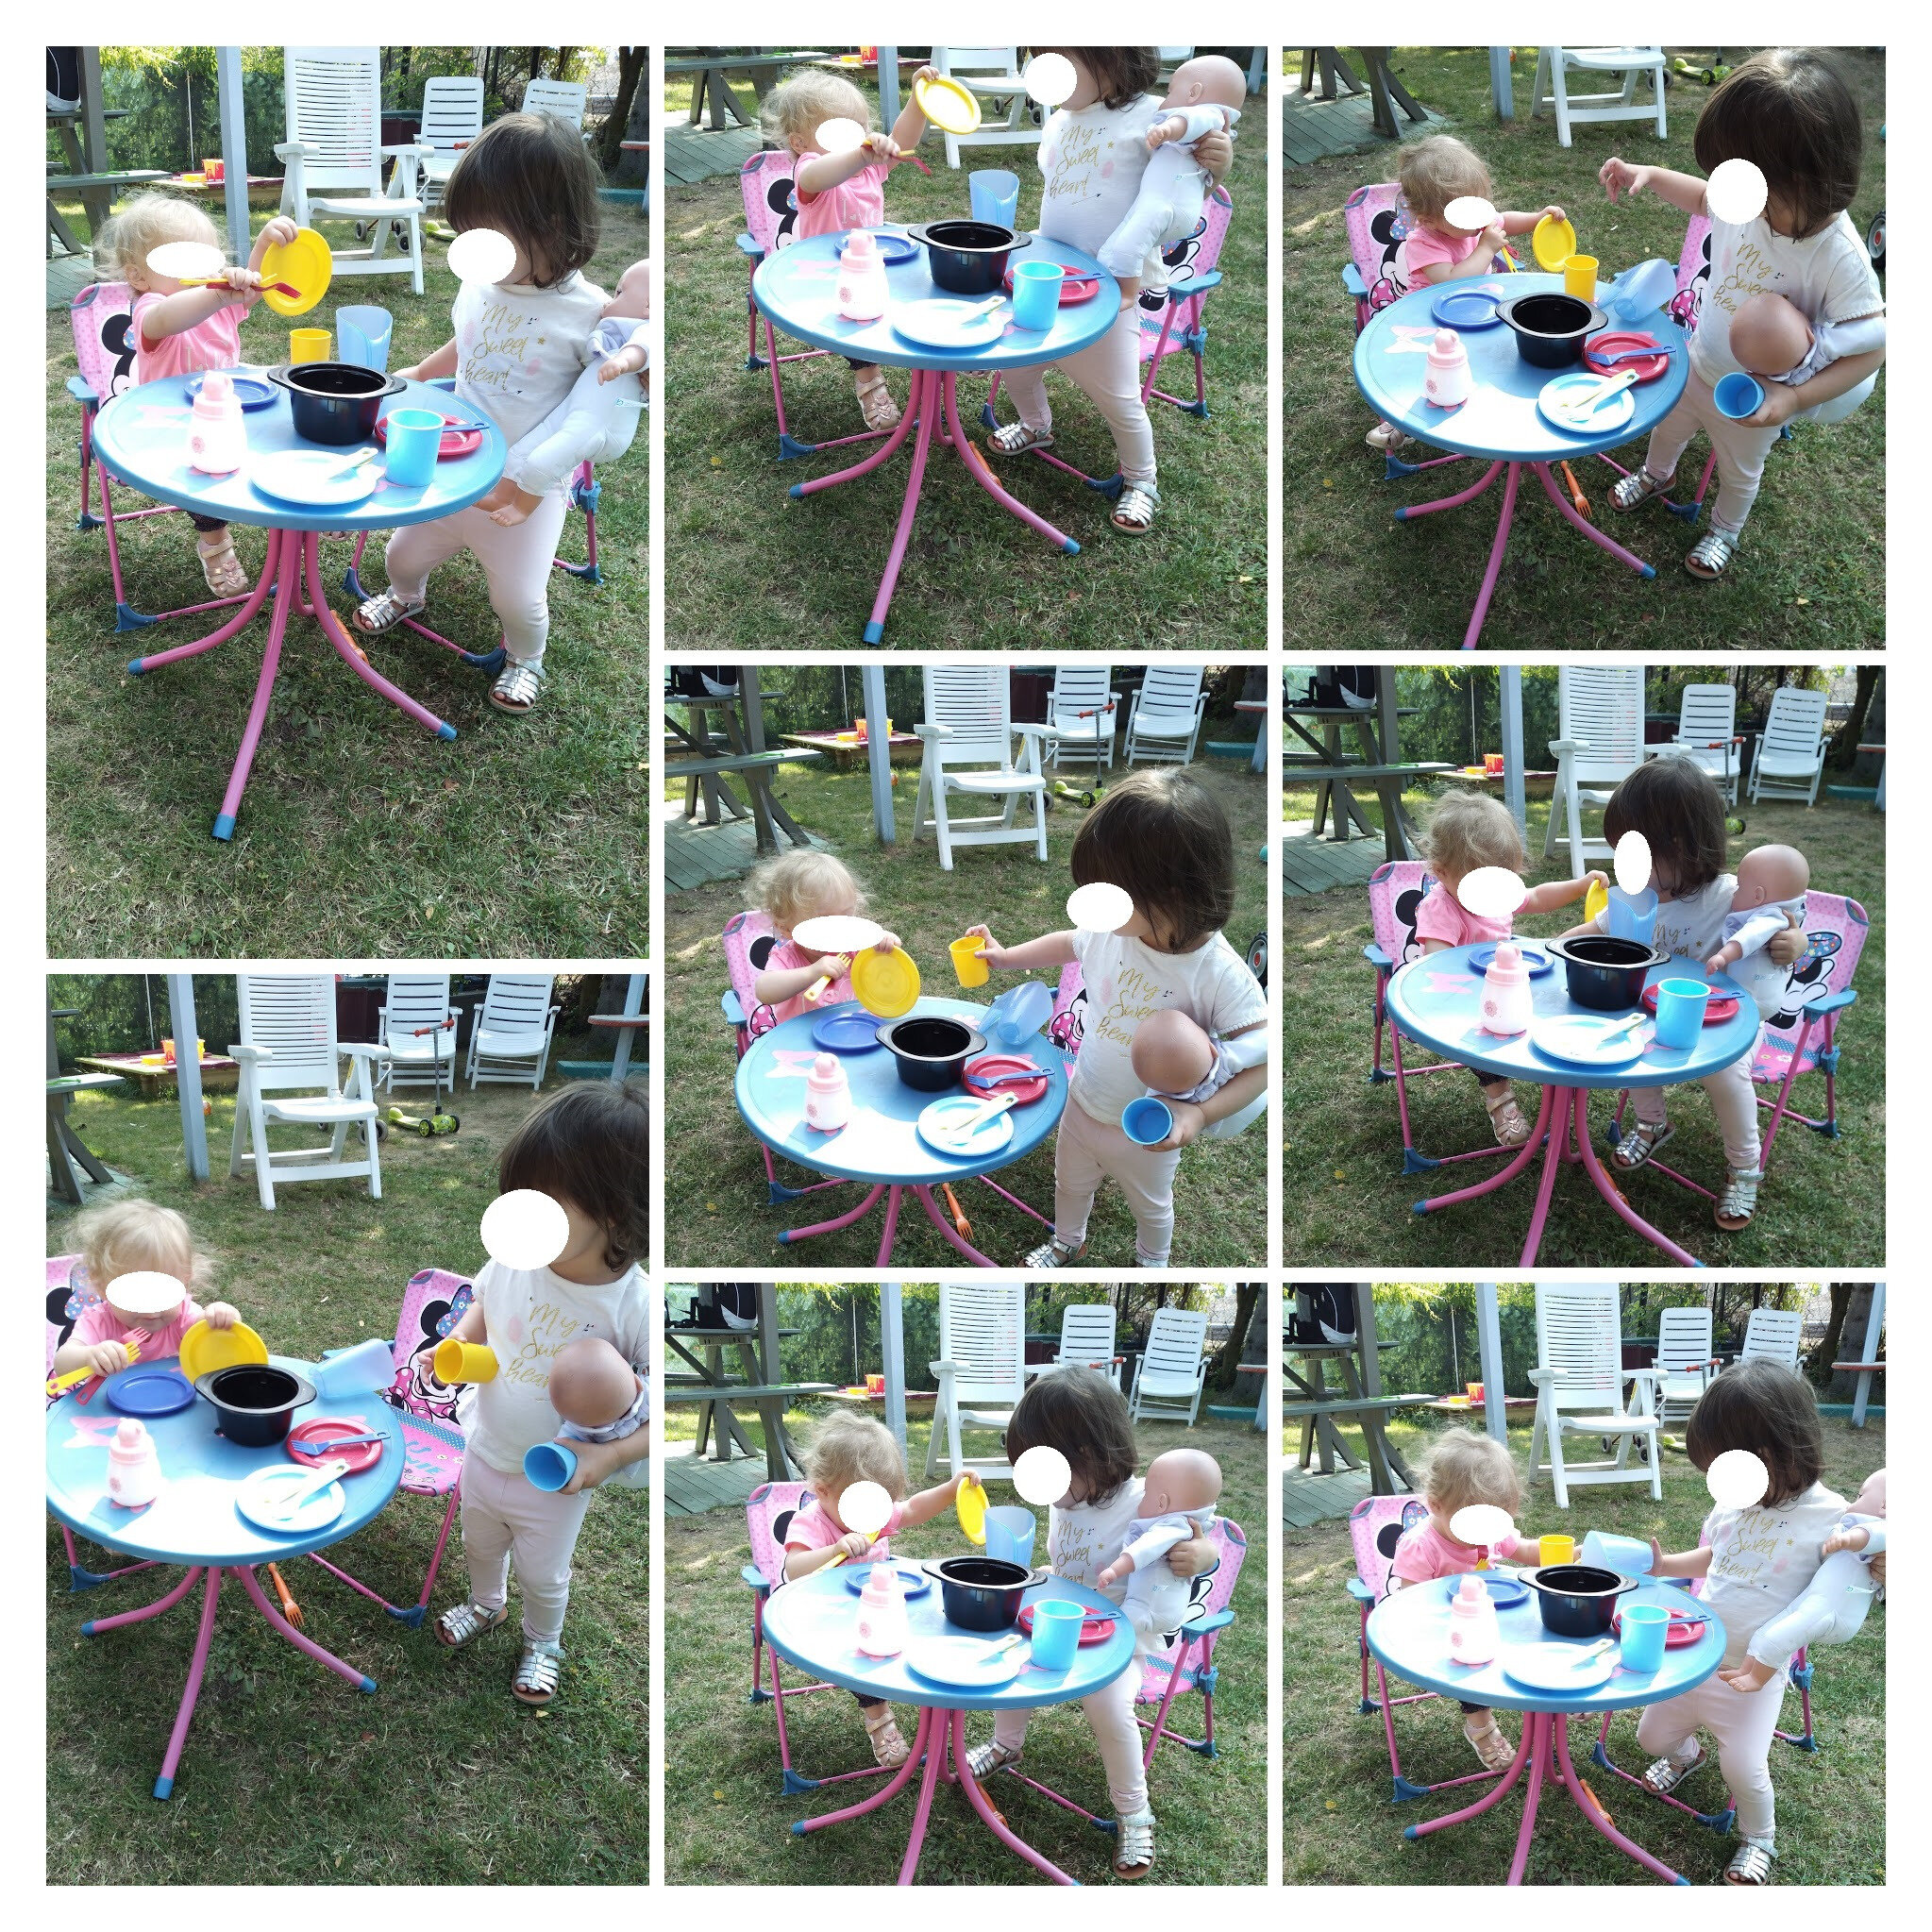 IMG_20190716_105556558-COLLAGE